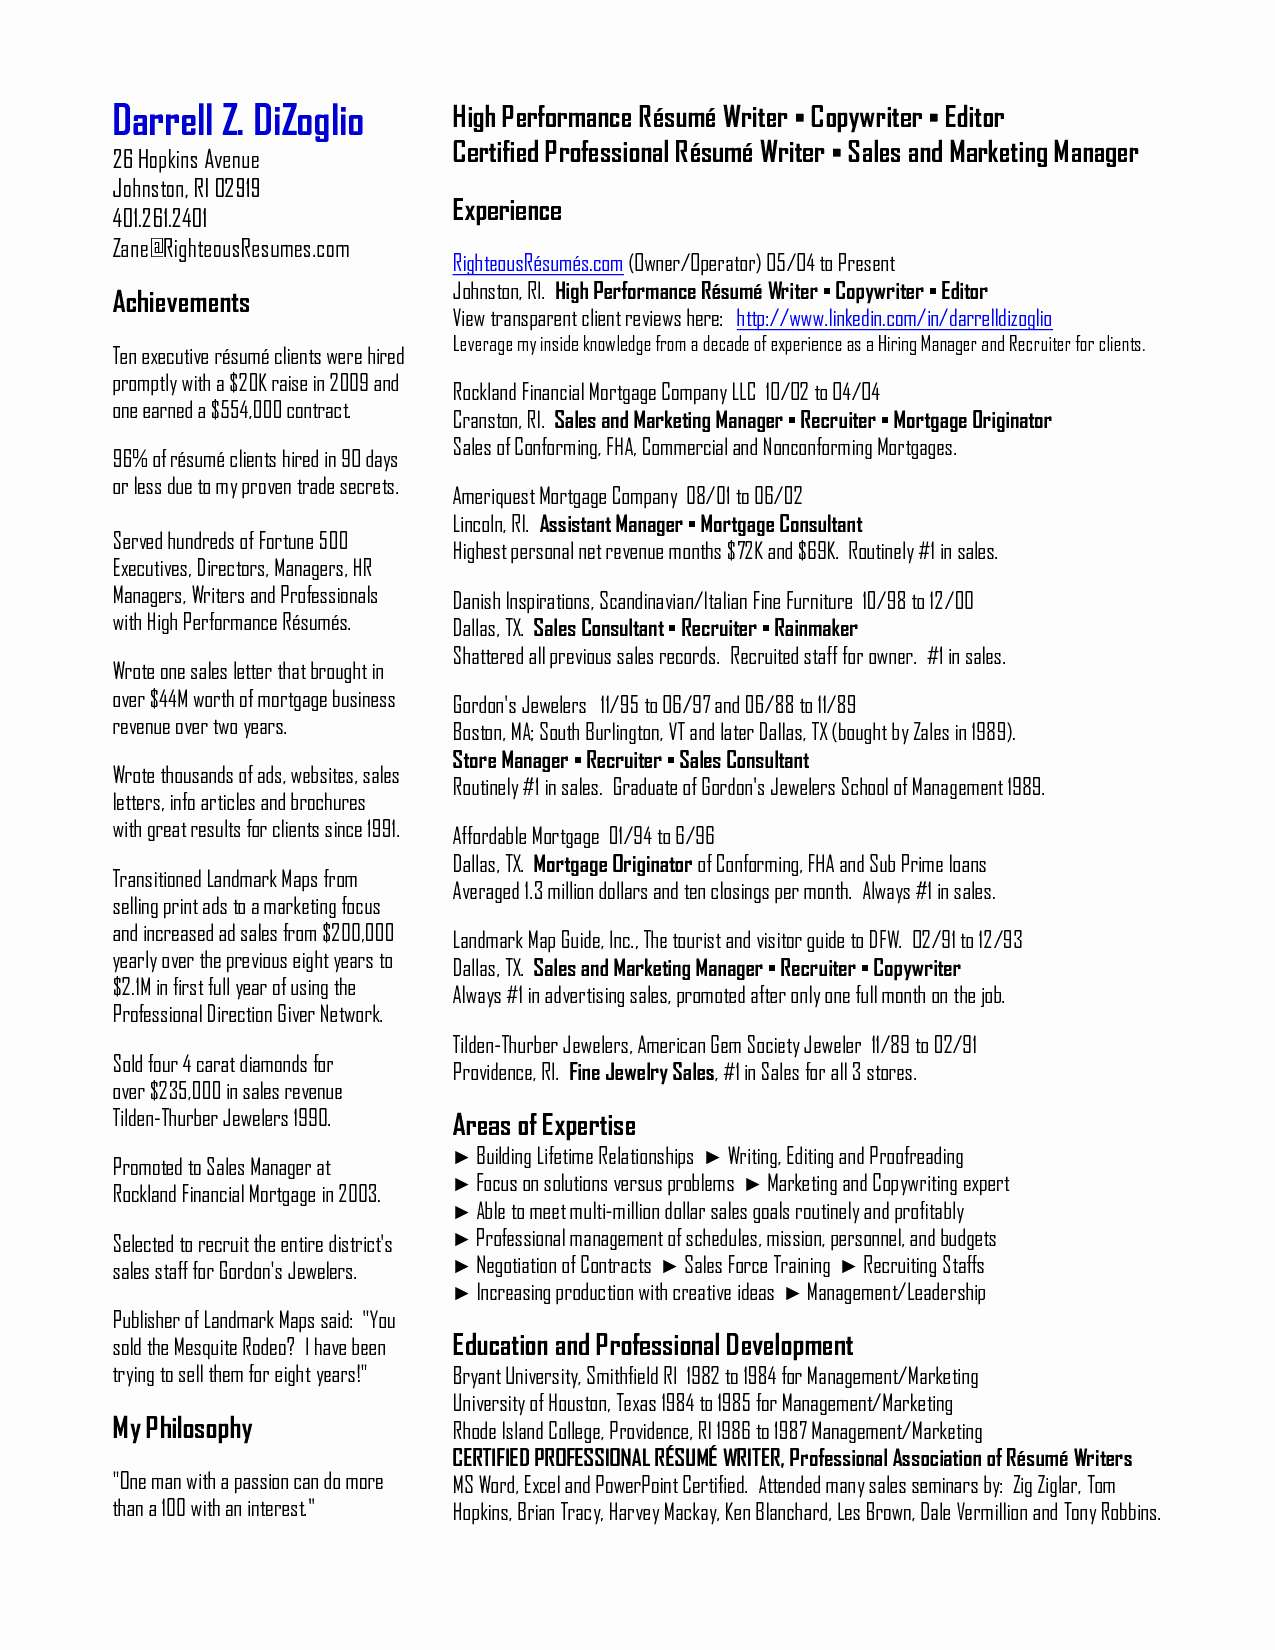 Performance Resume Example - Release Letter Template Samples